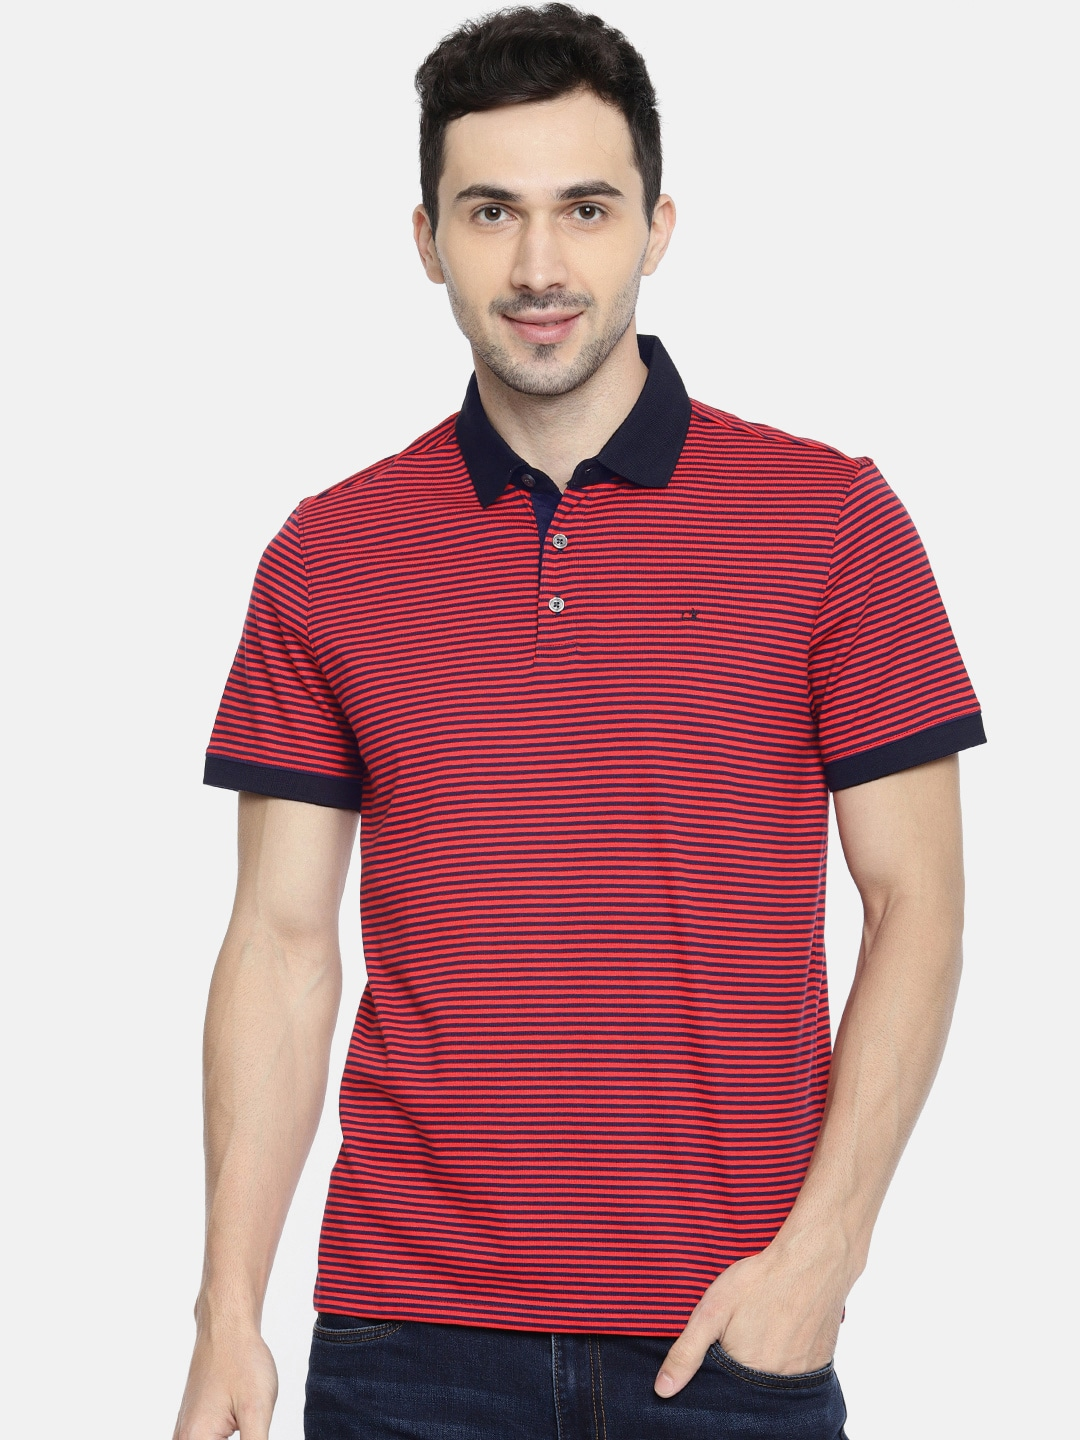 36a779288f9 Calvin Klein Jeans - Exclusive Calvin Klein Jeans Online Store in India at  Myntra